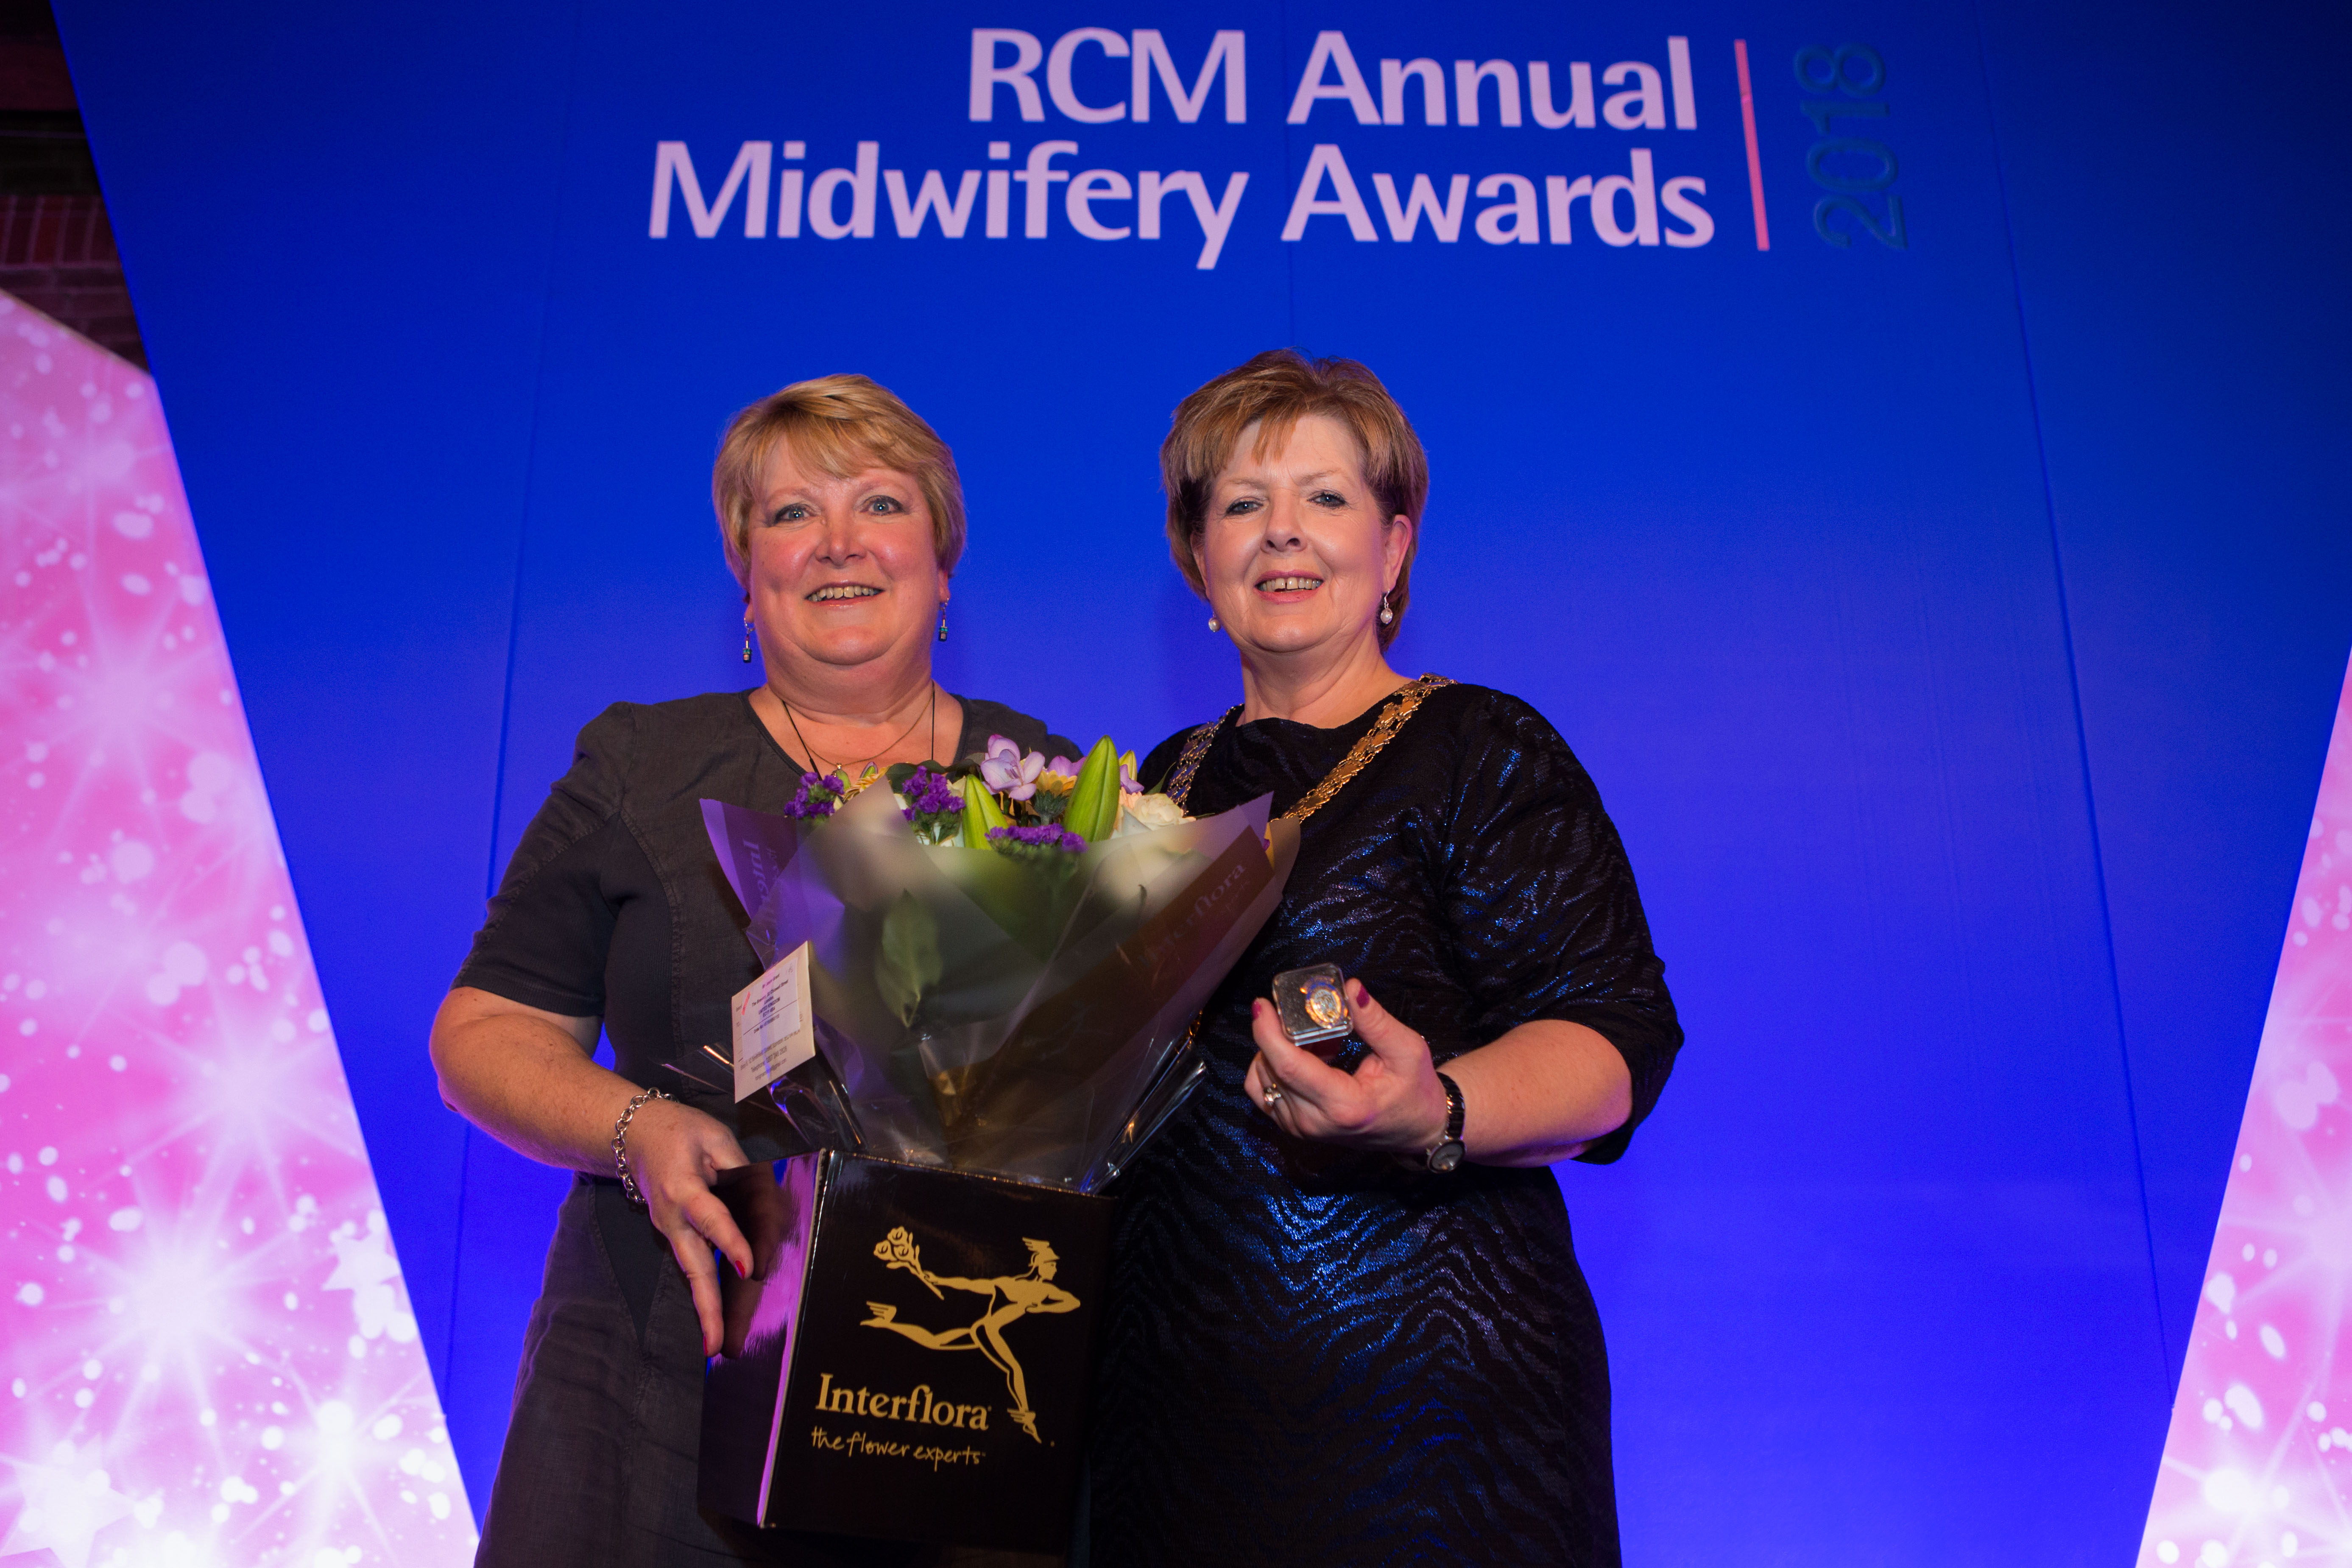 Honorary Fellow Gail Johnson with RCM President Kathryn Gutteridge